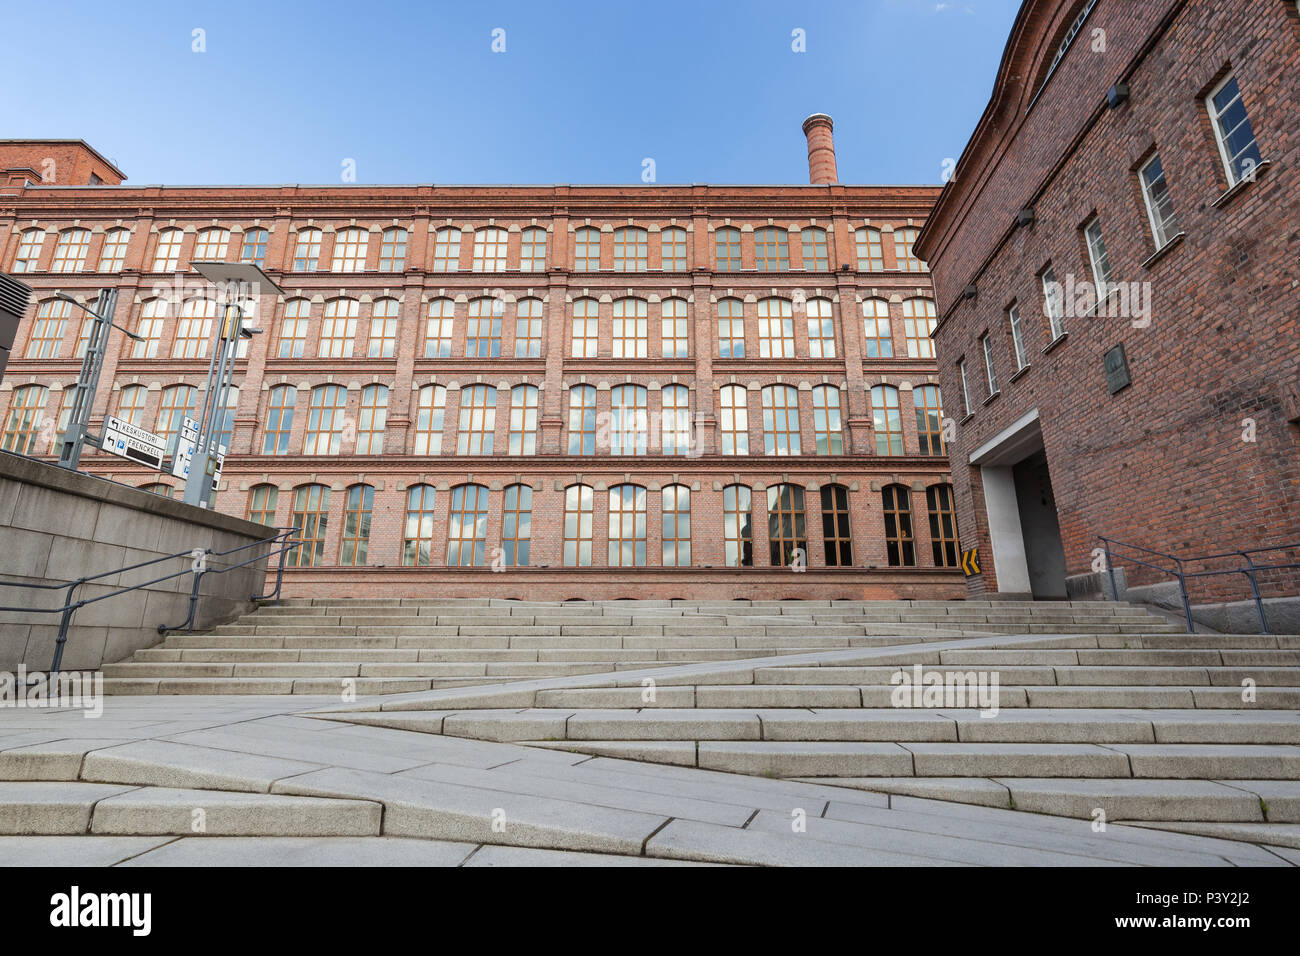 Stairs and old red brick industrial buildings in downtown Tampere, Finland on a sunny day. Stock Photo